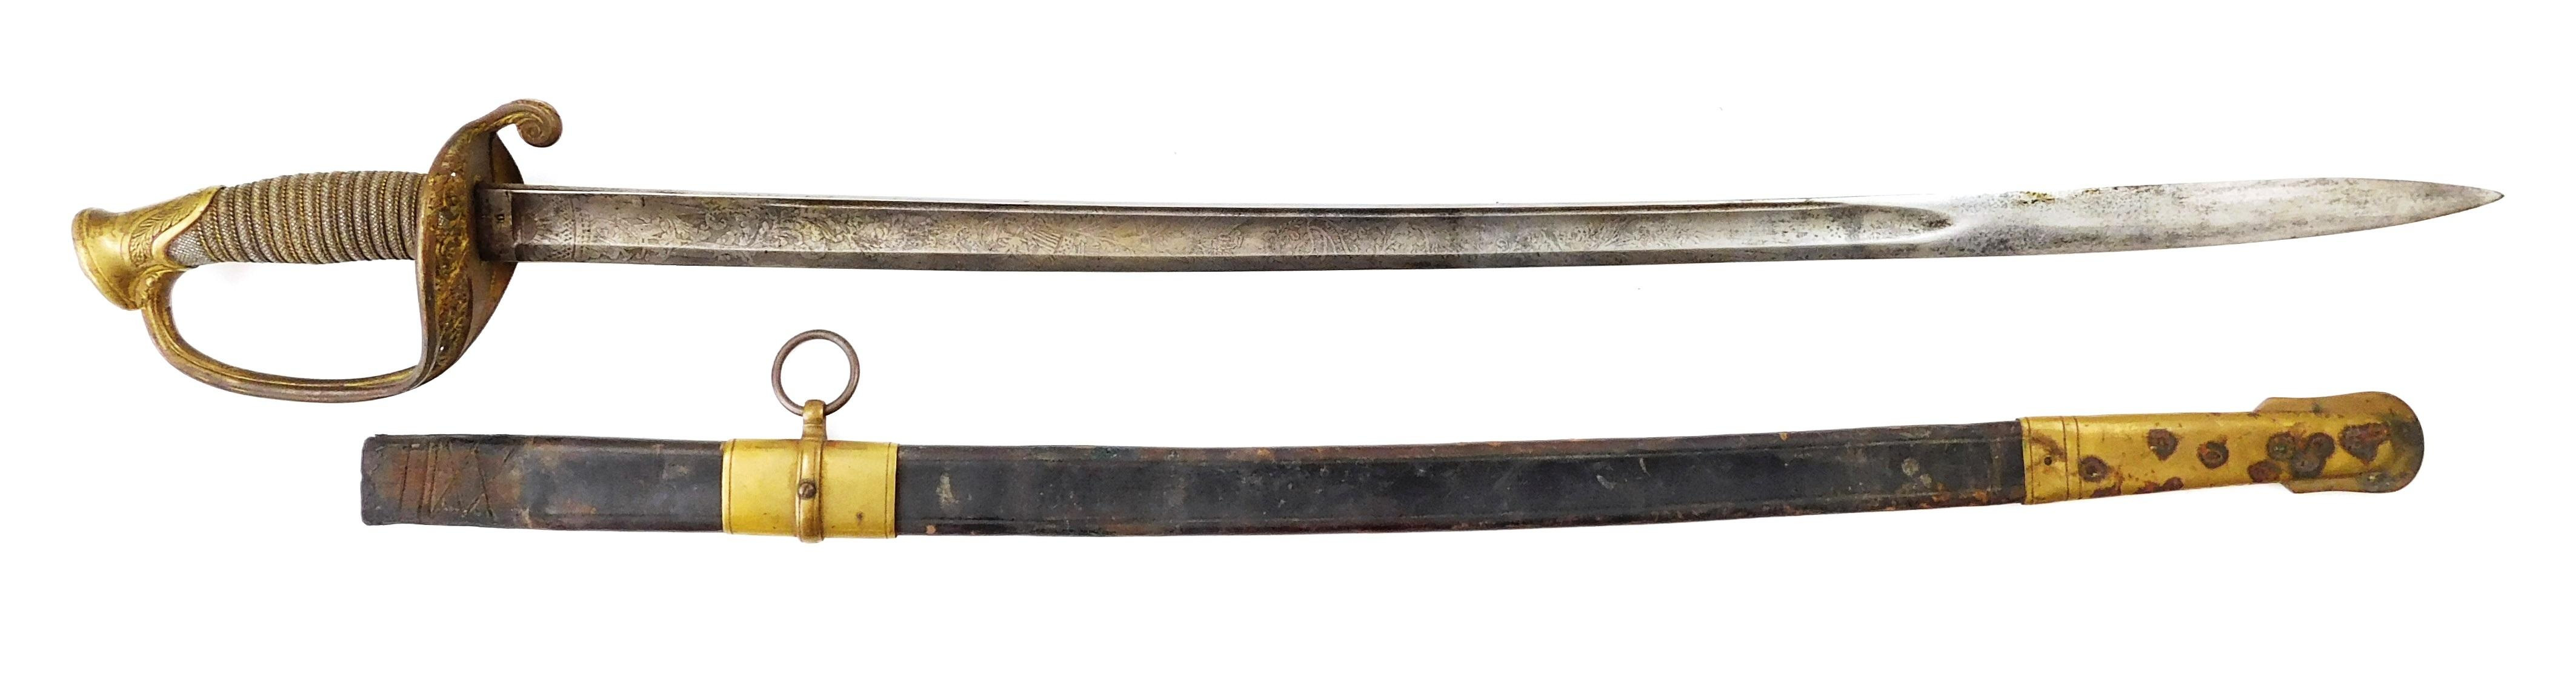 WEAPON: Civil war infantry officers sword, dated 1856 Ames. sword Co. Chicopee Mass., made with leather scabbard with the metal thro...